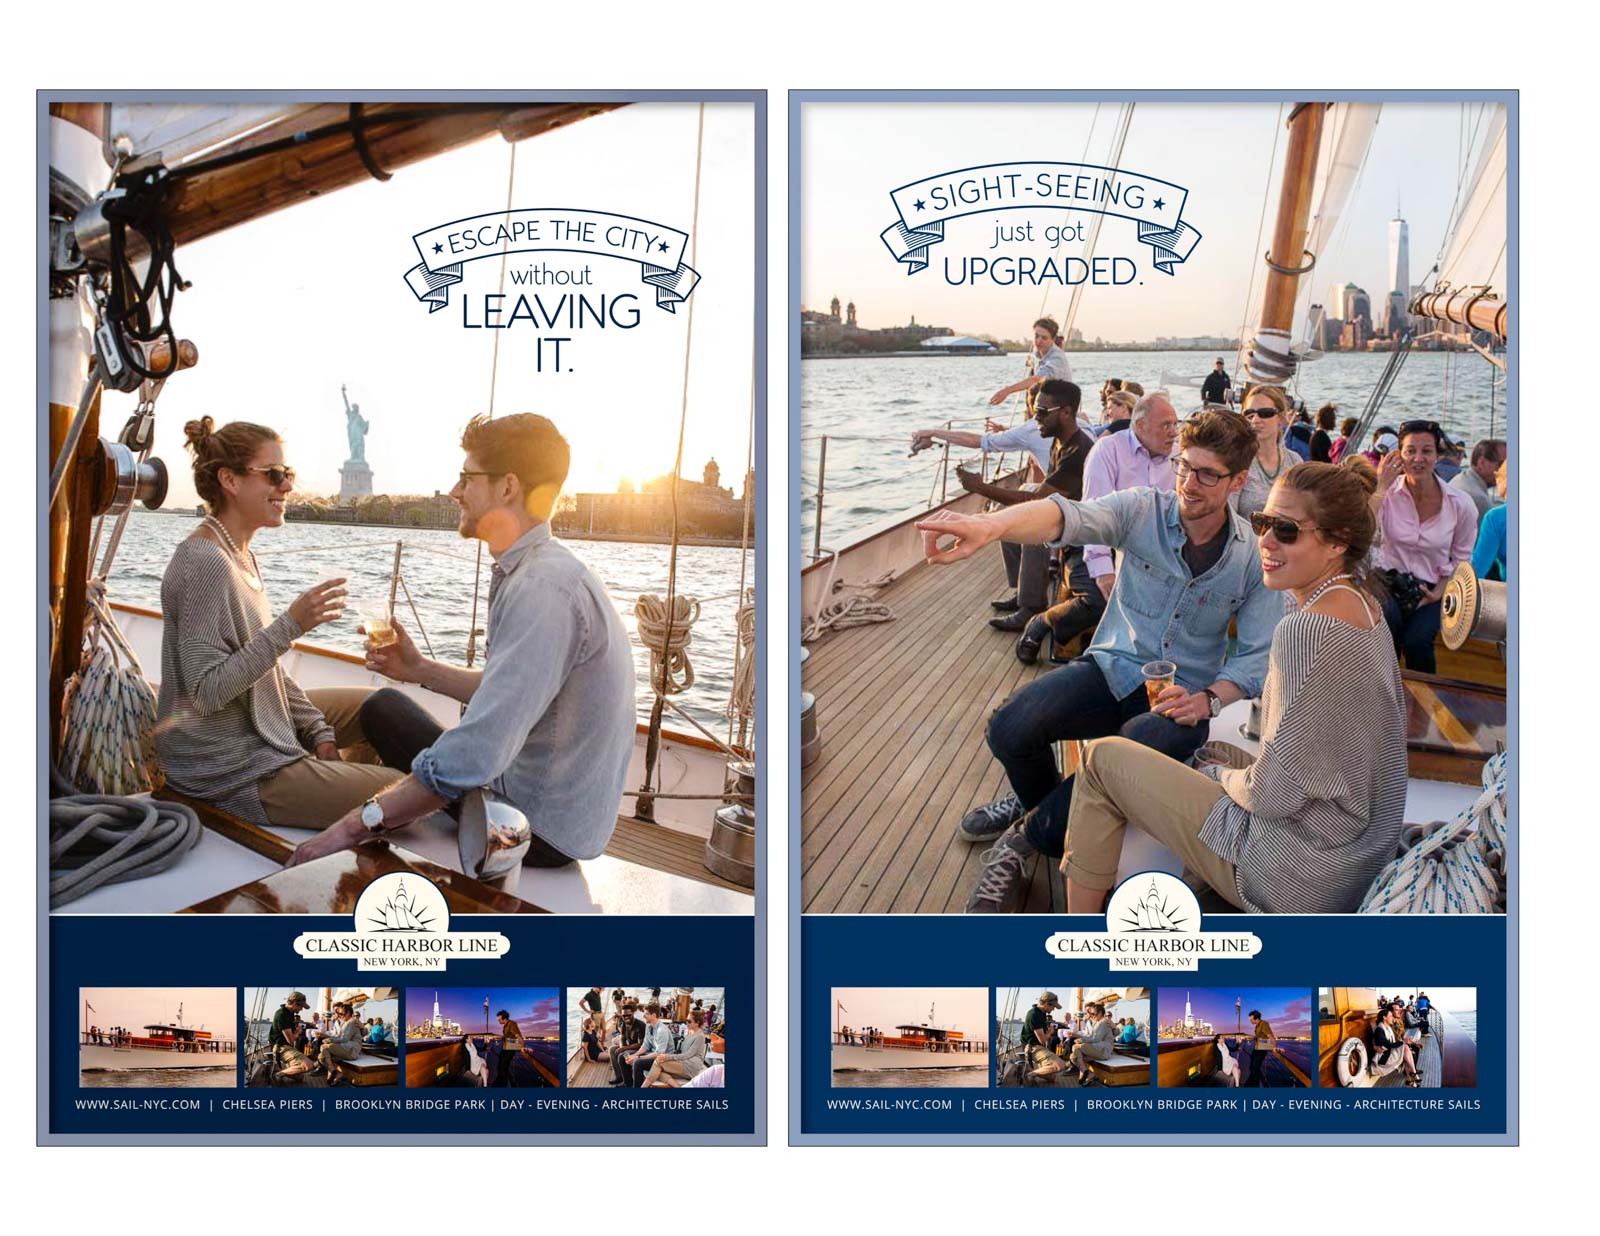 Advertising campaign for Classic Harbor sailboat cruises, in bus shelters, phone booths, and subways in NYC area.